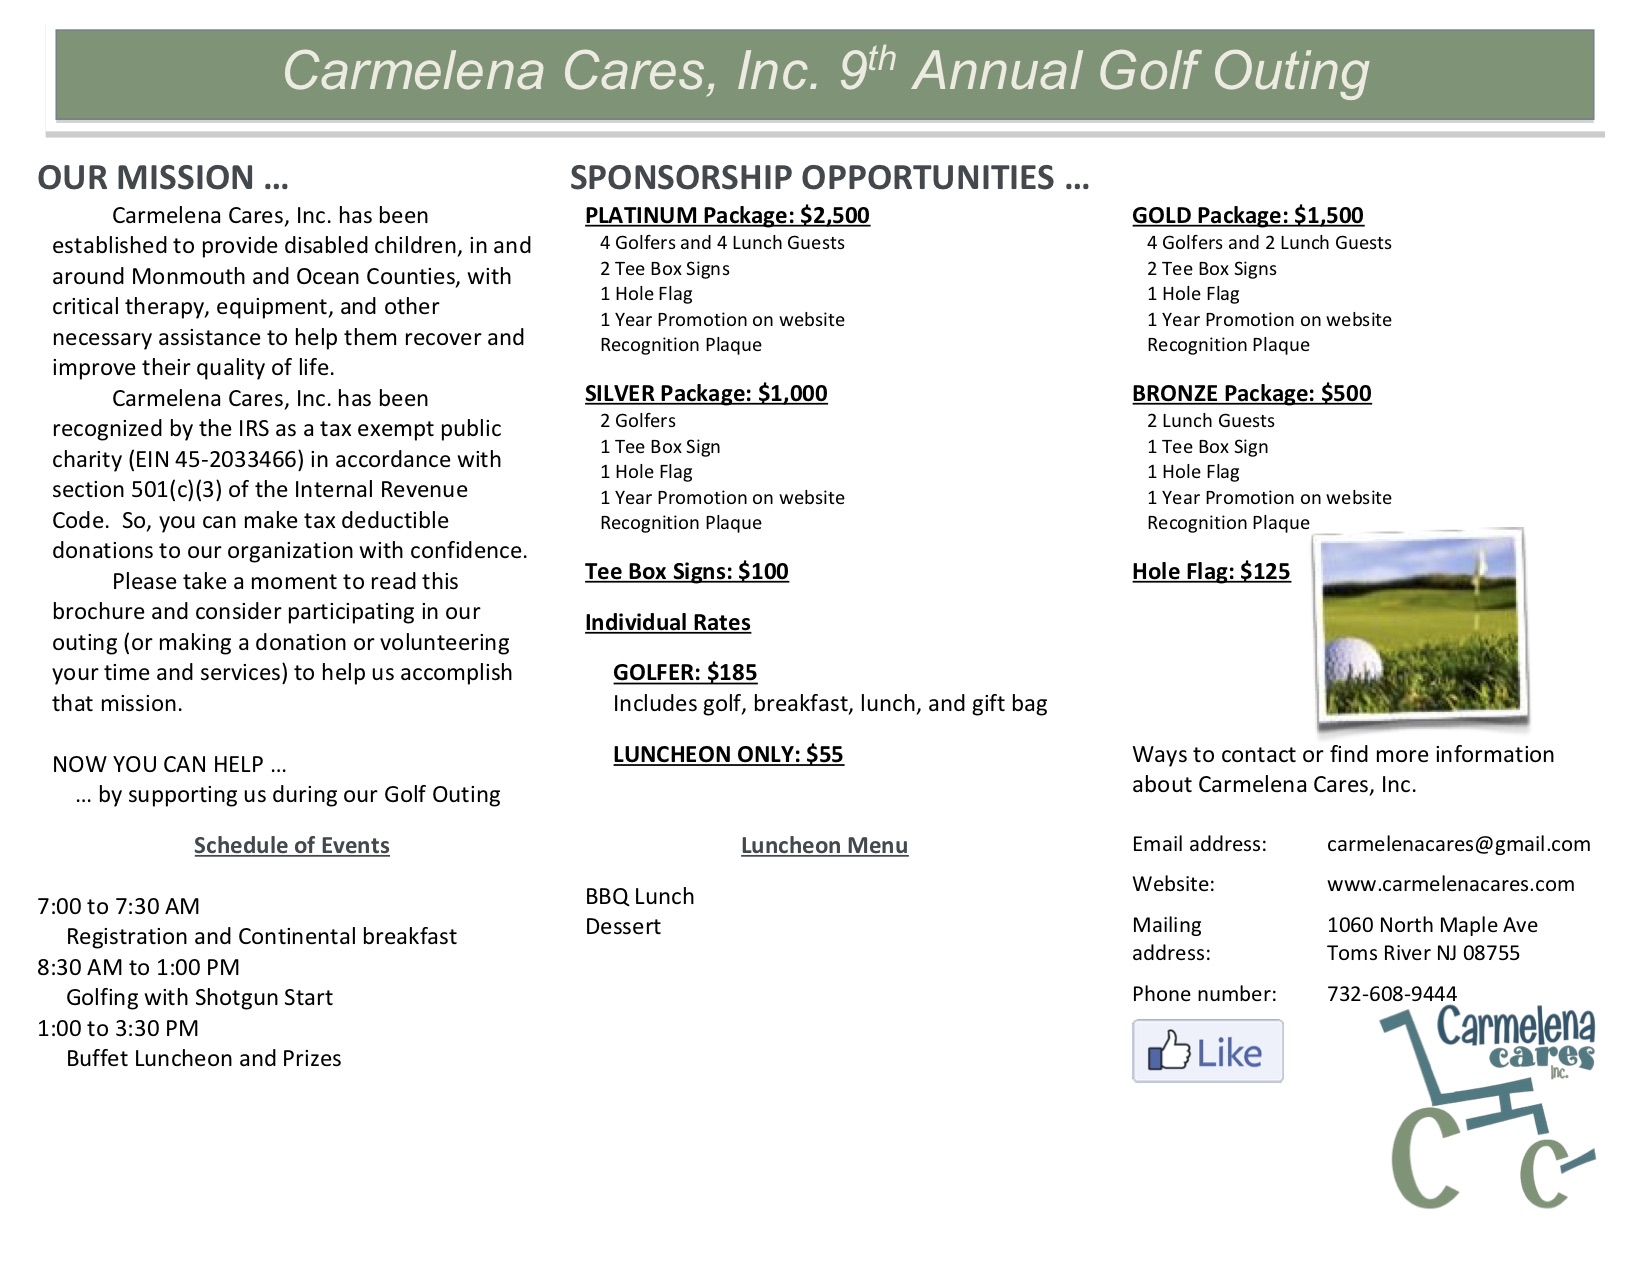 Carm Cares Golf Brochure 2019  inside.jpg